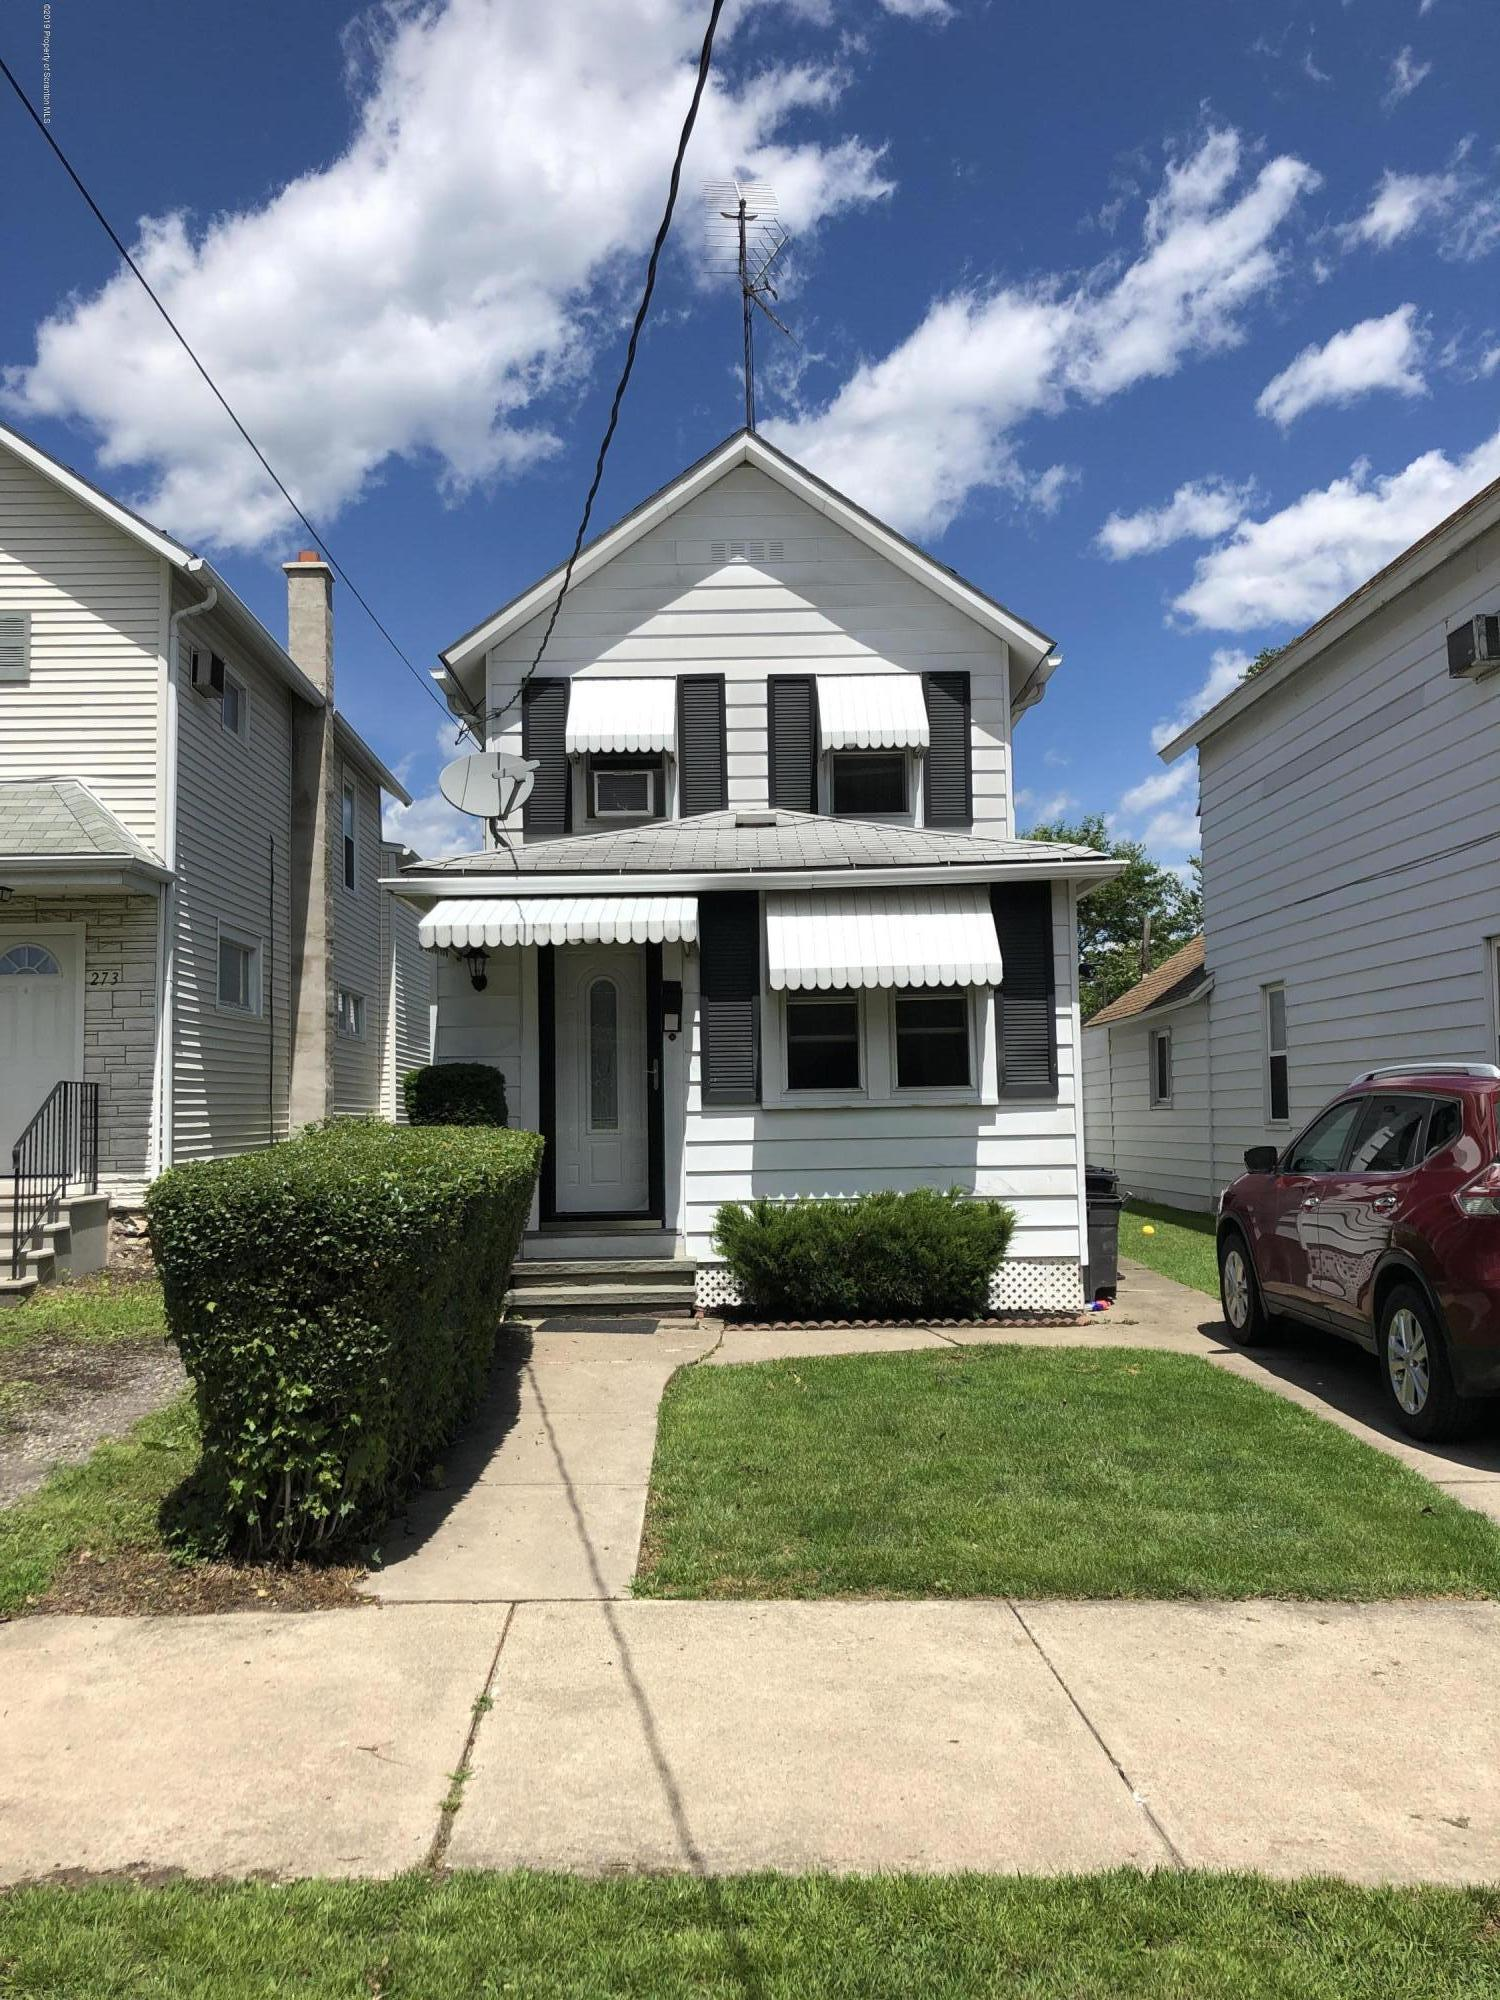 271 Charles Street, Luzerne, Pennsylvania 18709, 3 Bedrooms Bedrooms, 7 Rooms Rooms,2 BathroomsBathrooms,Single Family,For Sale,Charles,19-2856